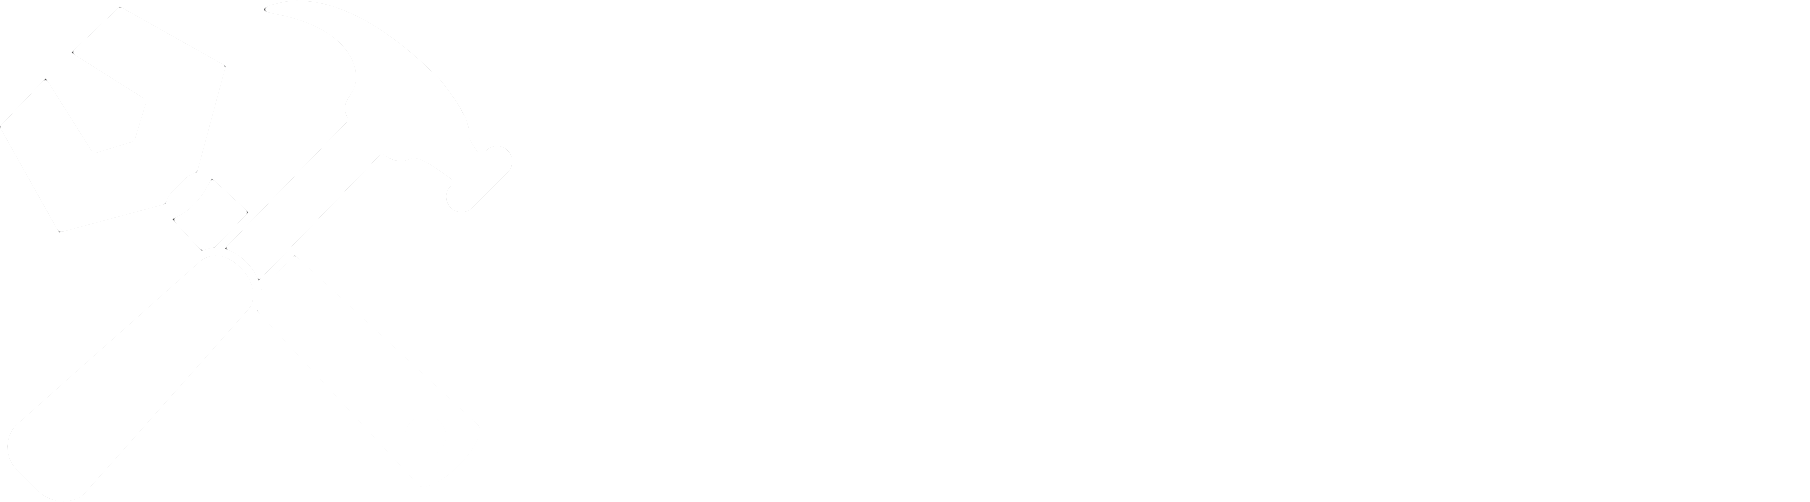 certified professional engineers.png